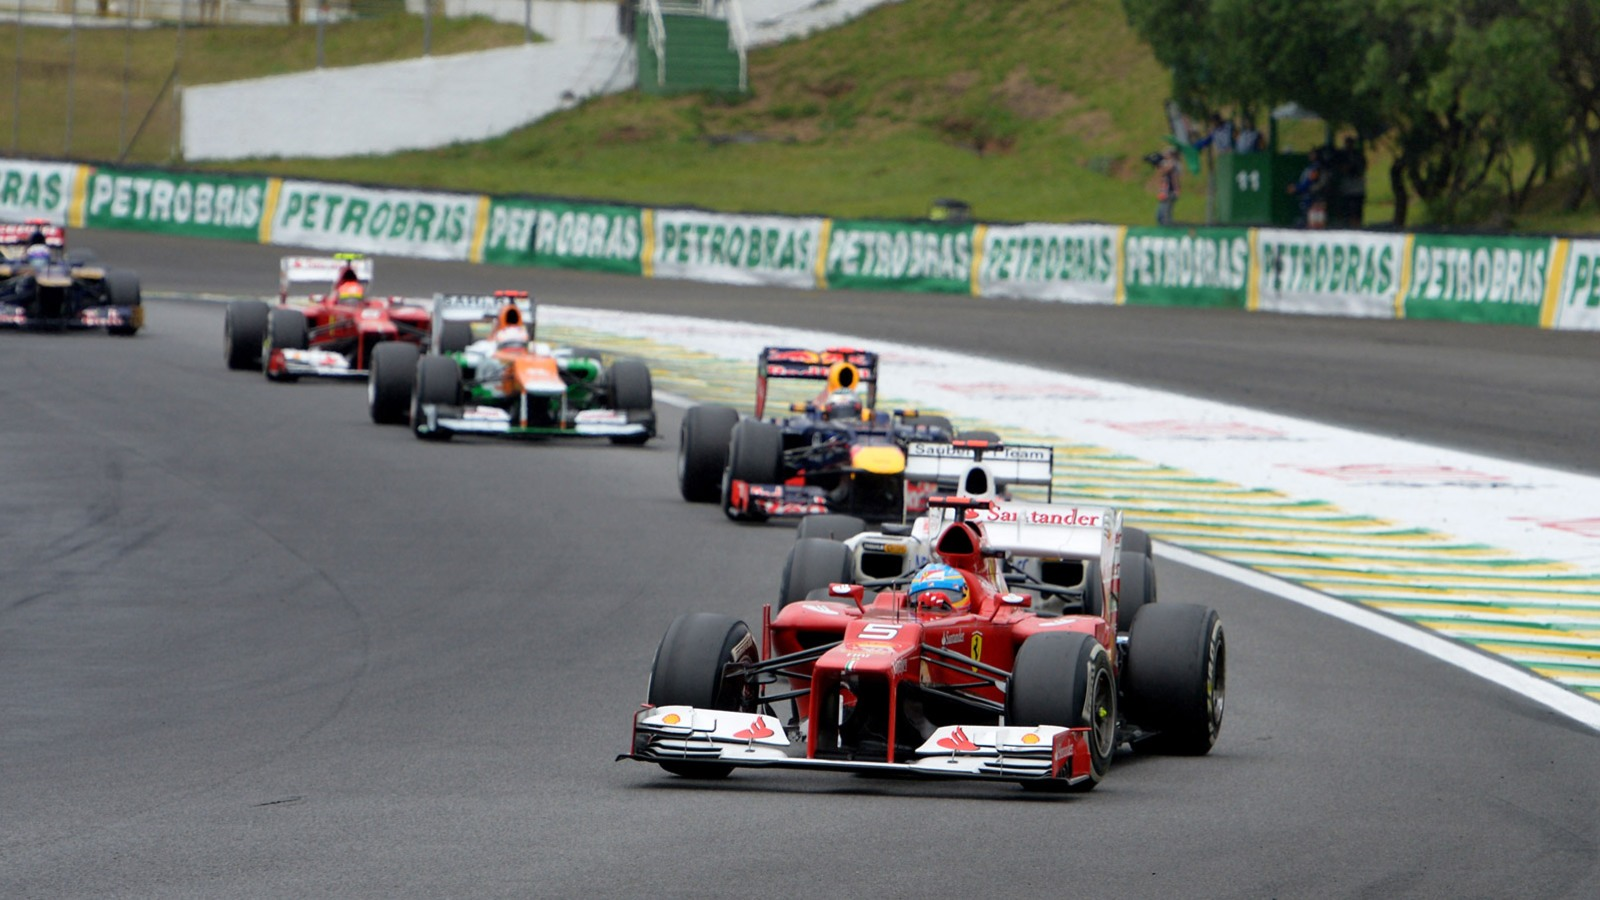 BRAZILIAN GRAND PIX OF FORMULA ONE